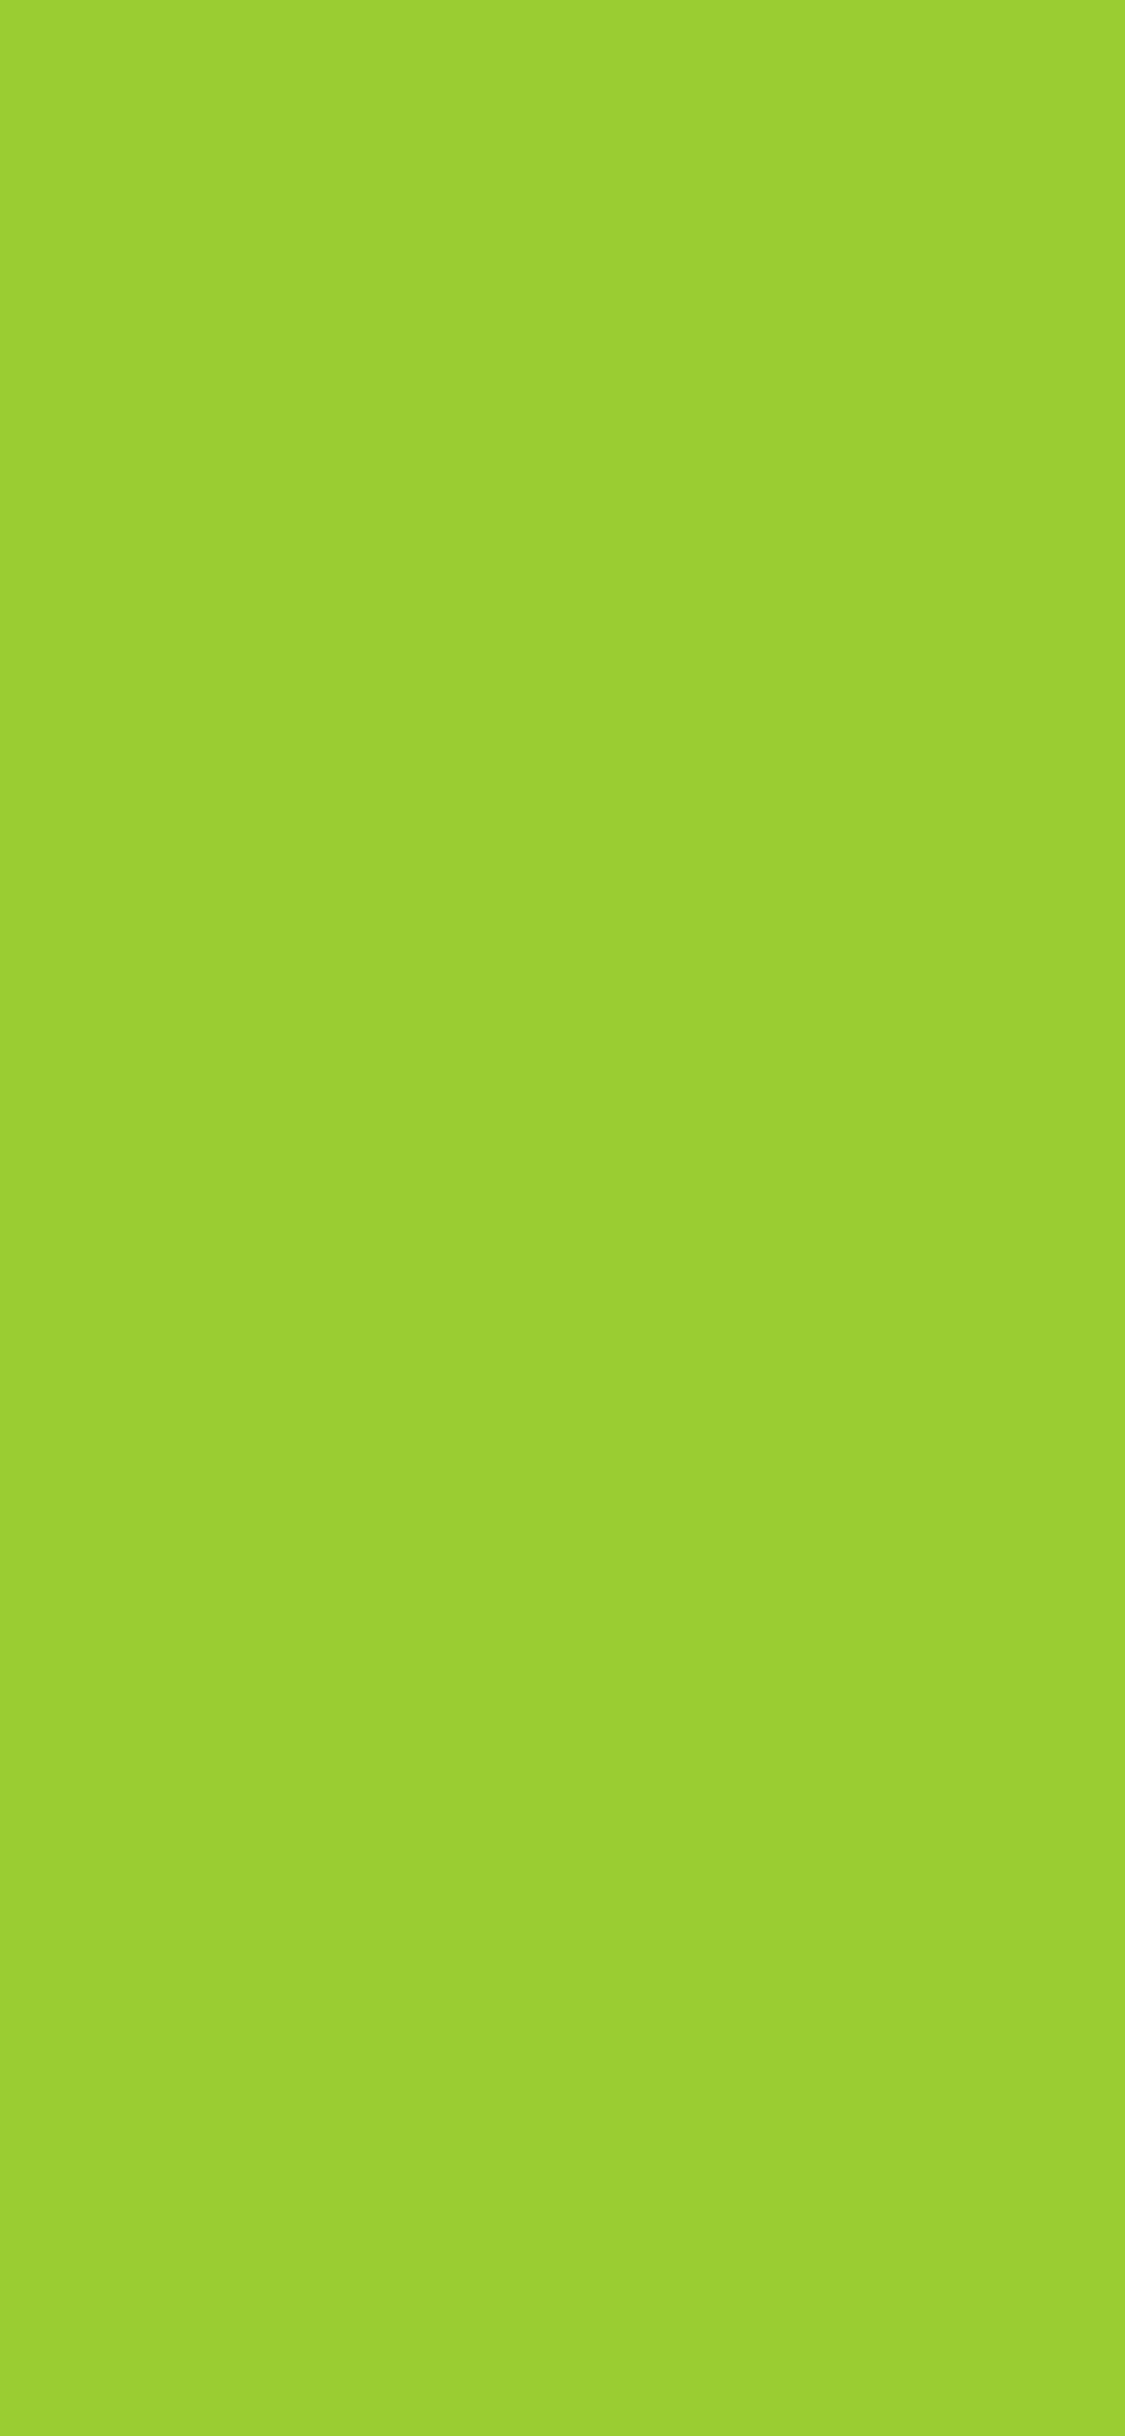 1125x2436 Yellow-green Solid Color Background